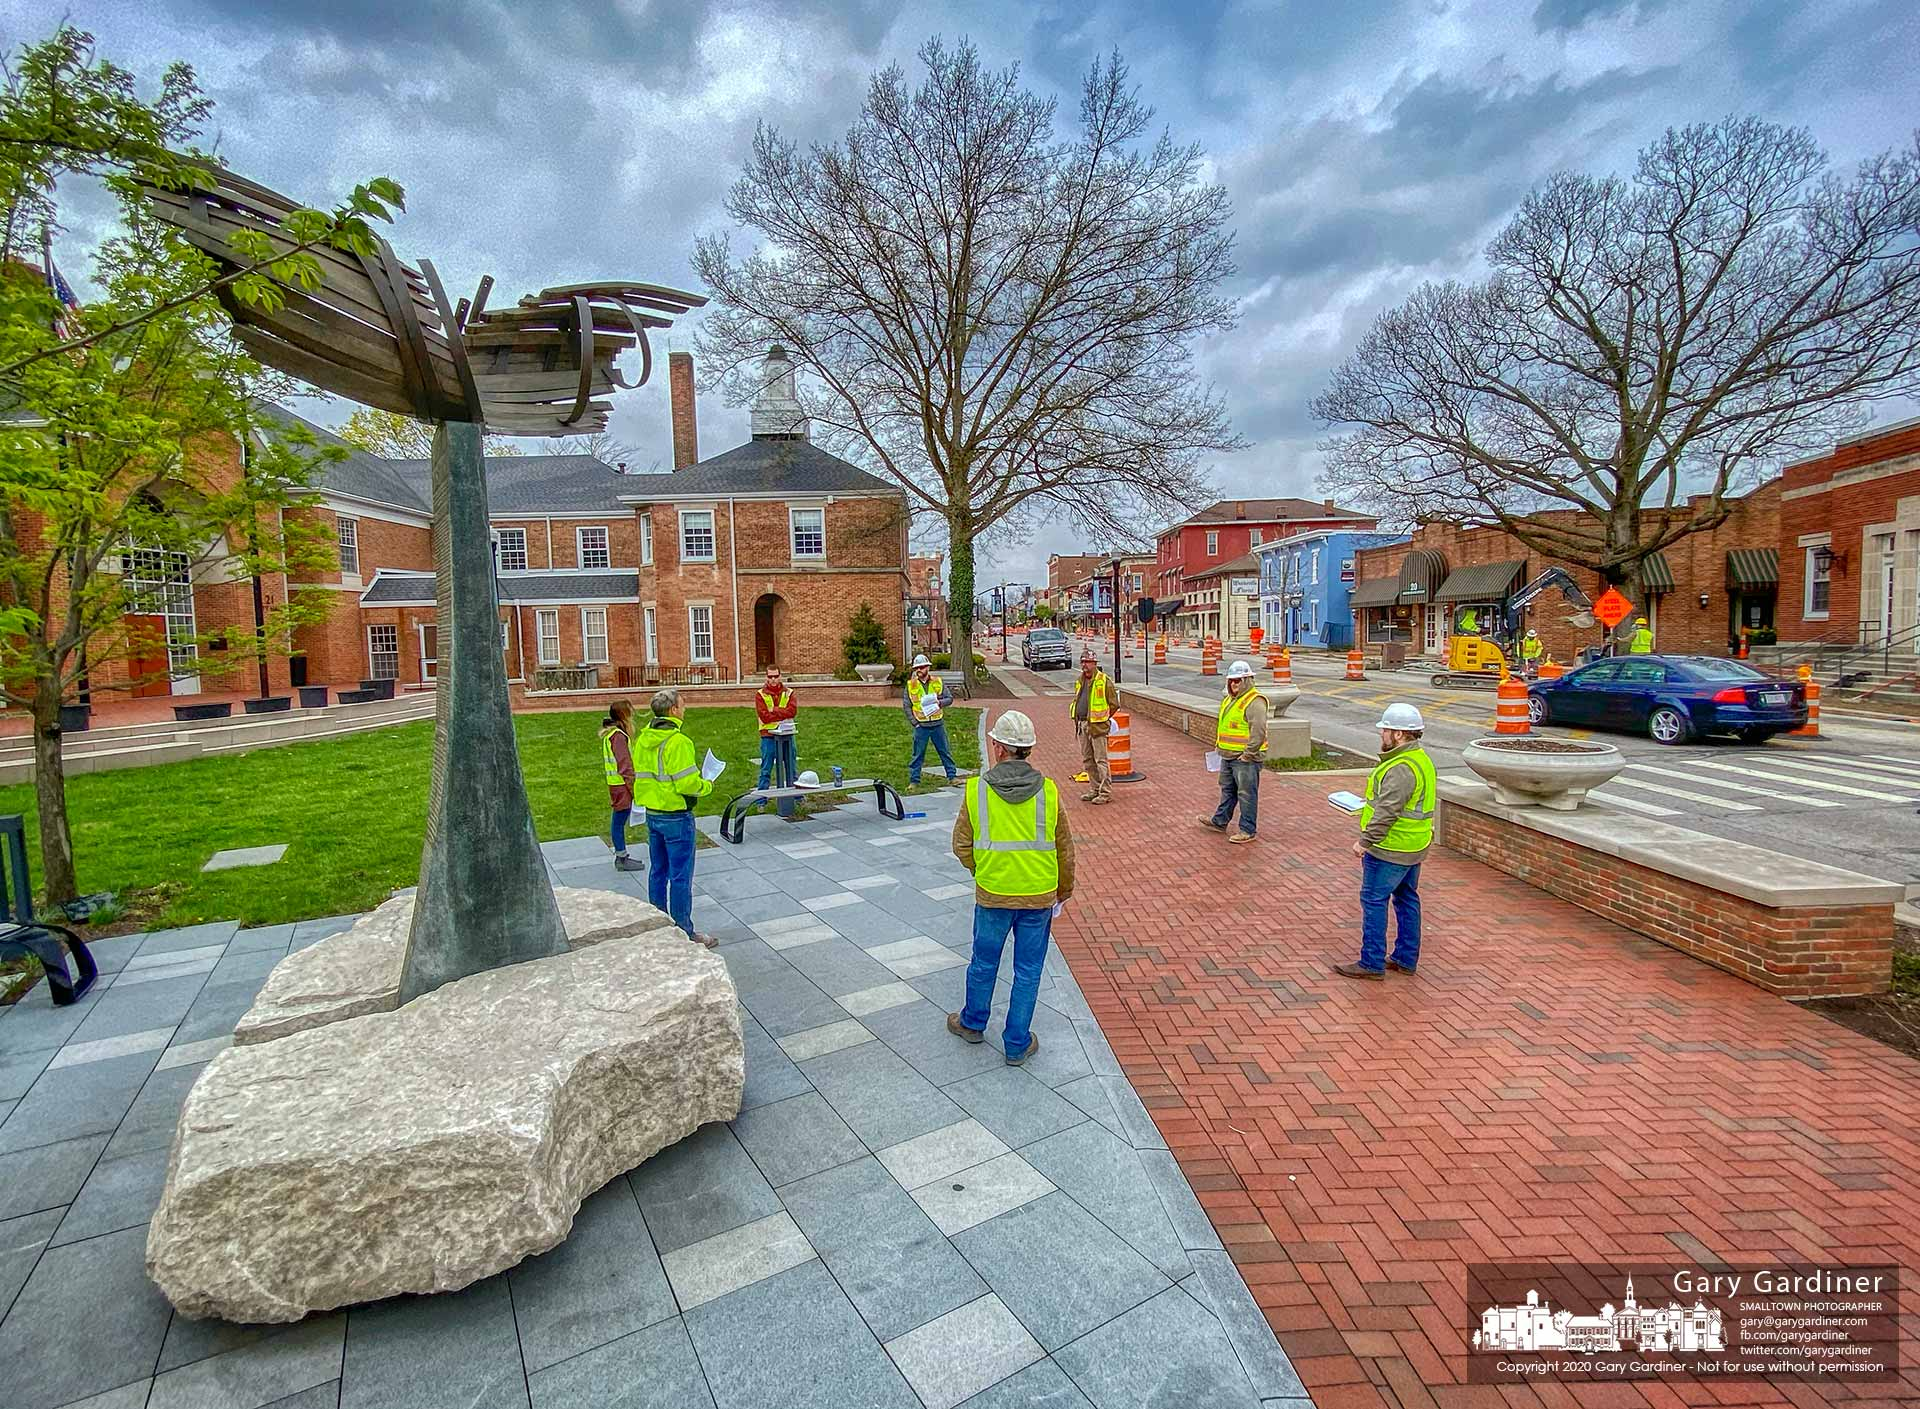 Contractors and inspectors for the Uptown project gather for an afternoon meeting standing six feet apart in front of City Hall before moving to the rear of the building to be better heard over street and construction noise. My Final Photo for April 14, 2020.